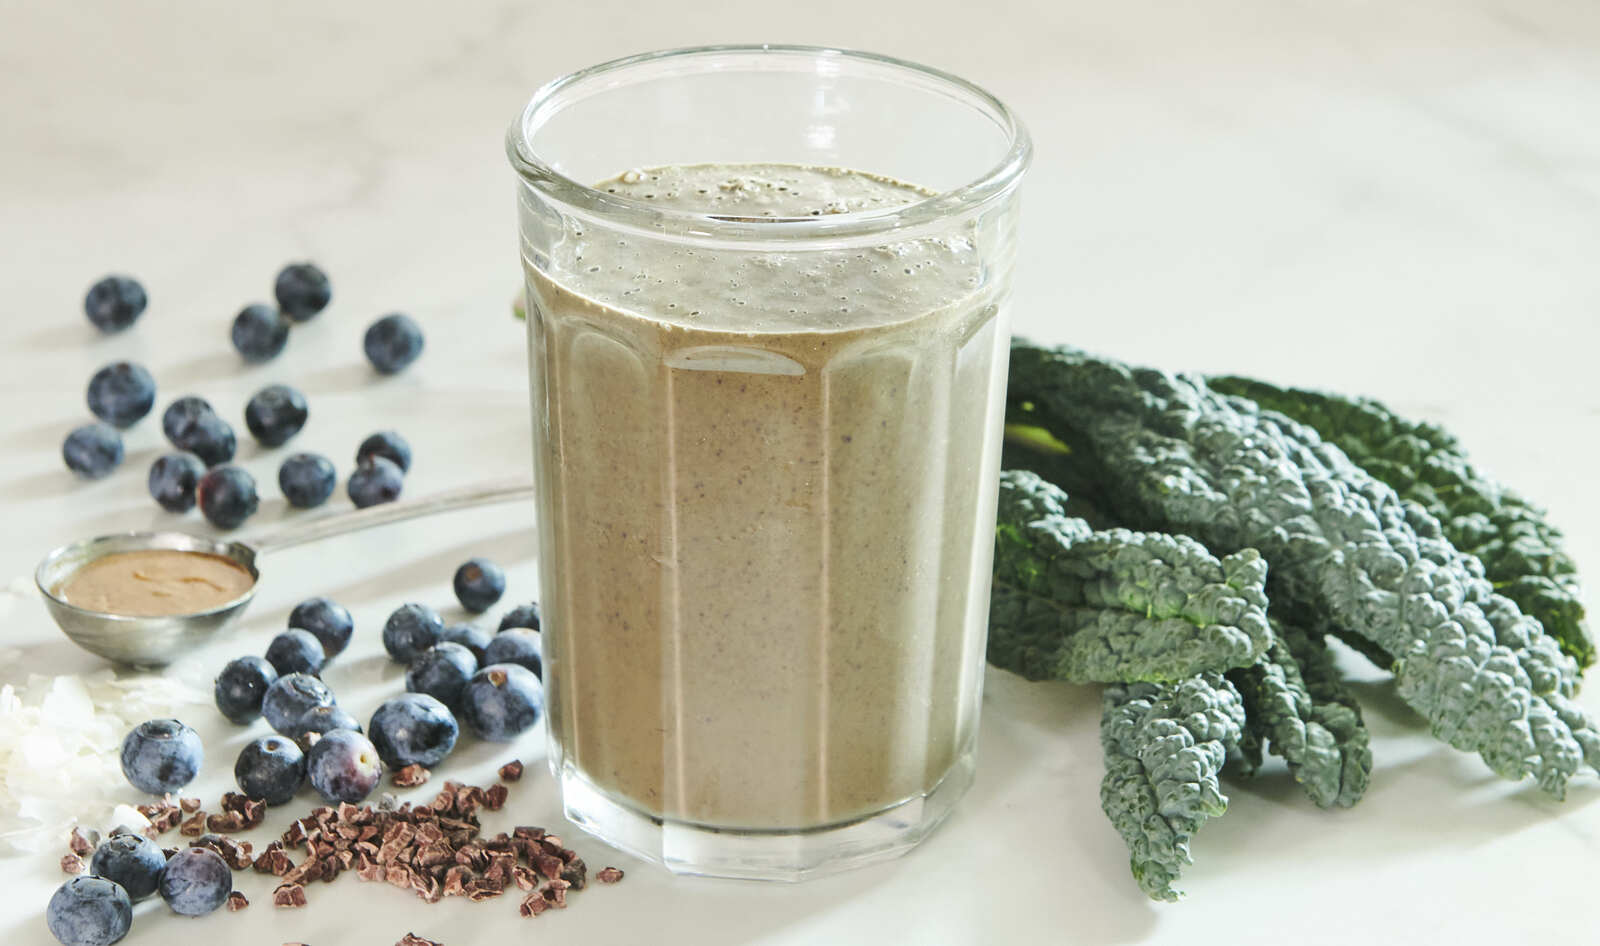 Vegan Chocolate Açaí Coconut Smoothie With Kale and Blueberries